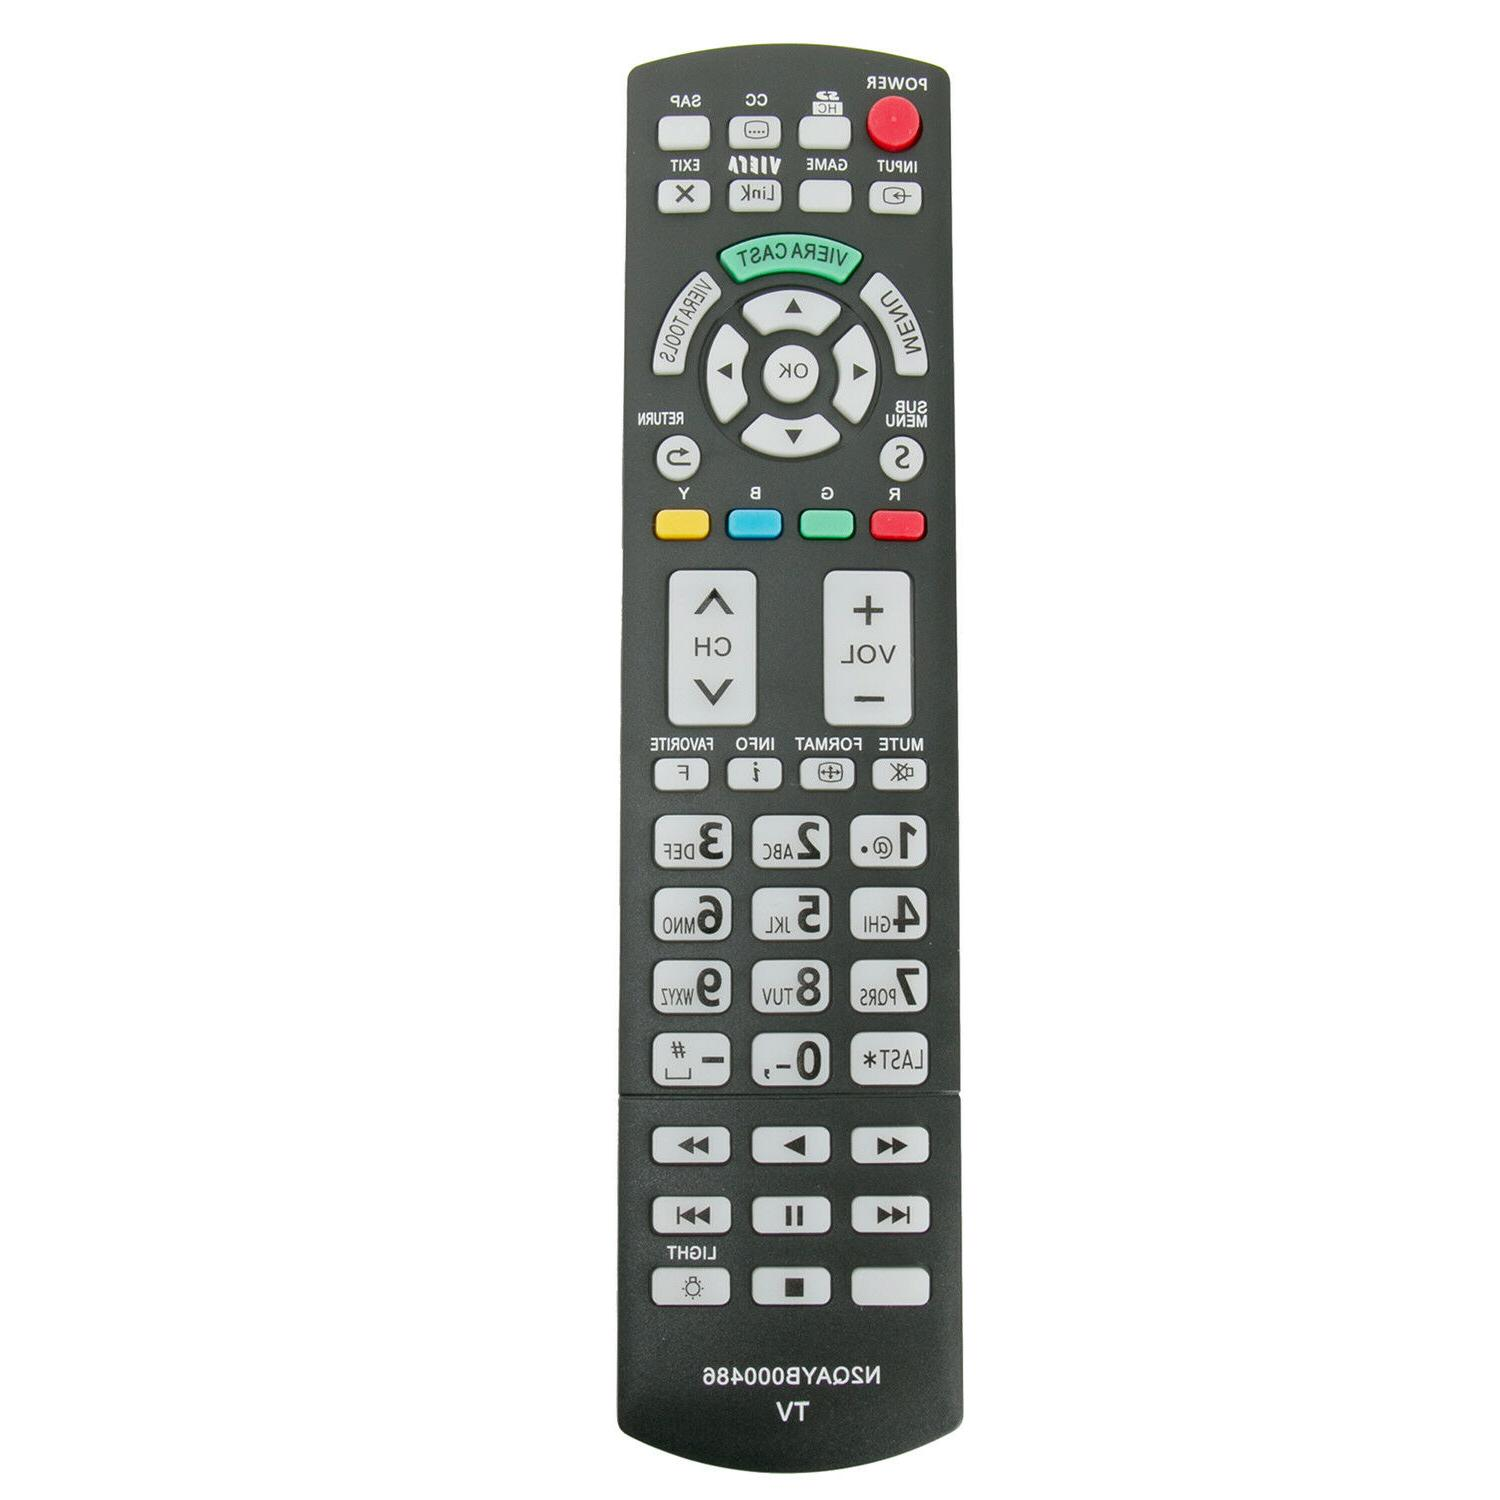 New N2QAYB000486 Replaced Remote Control for Many Panasonic